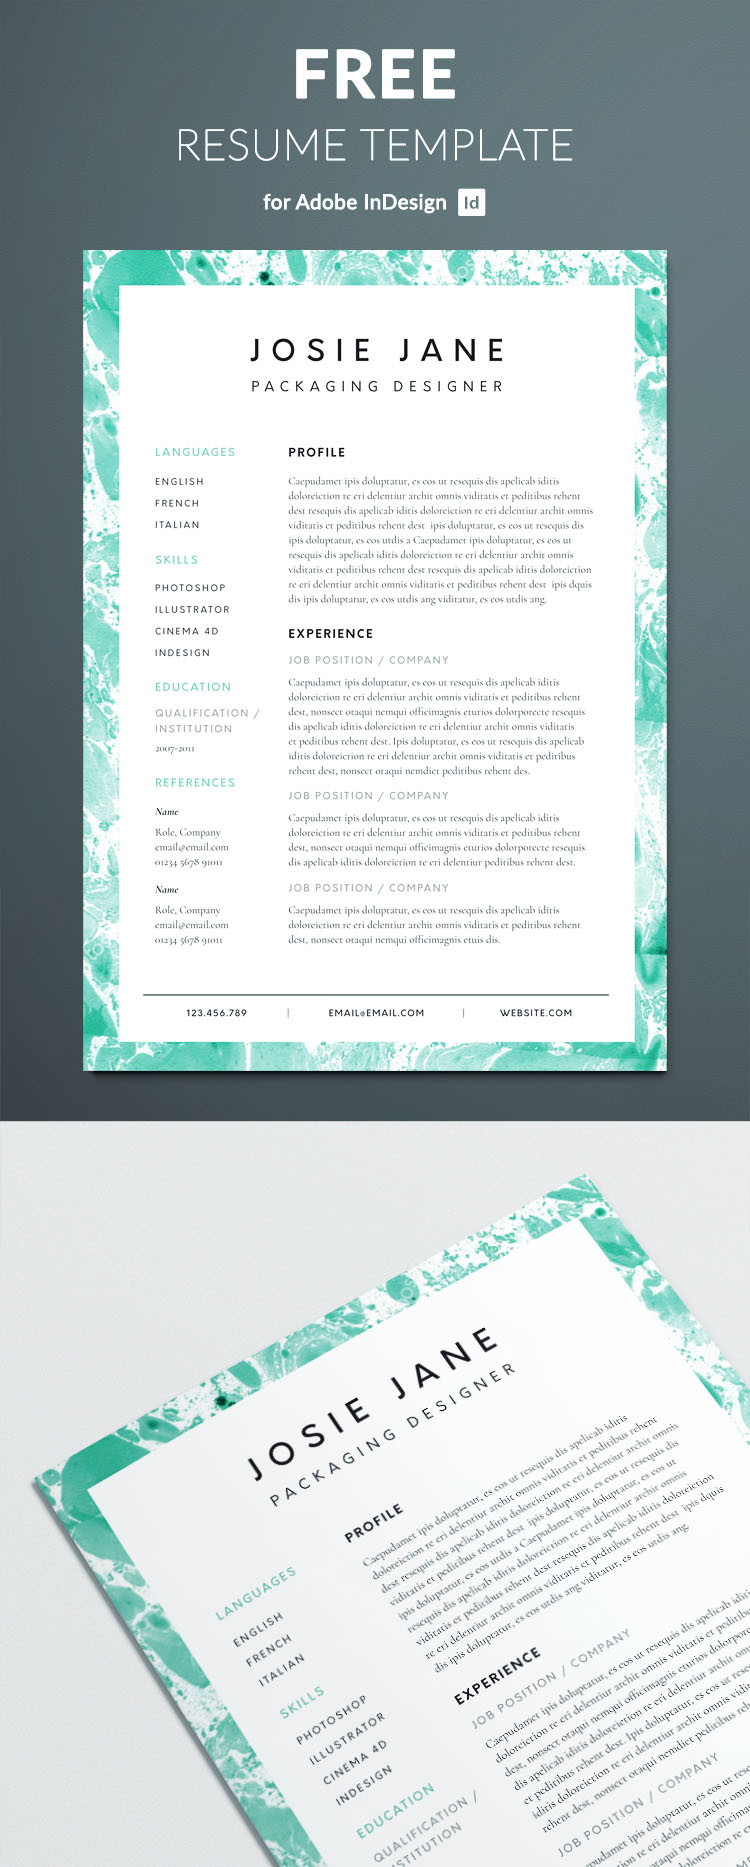 creative resume template for indesign - perfect graphic design resume